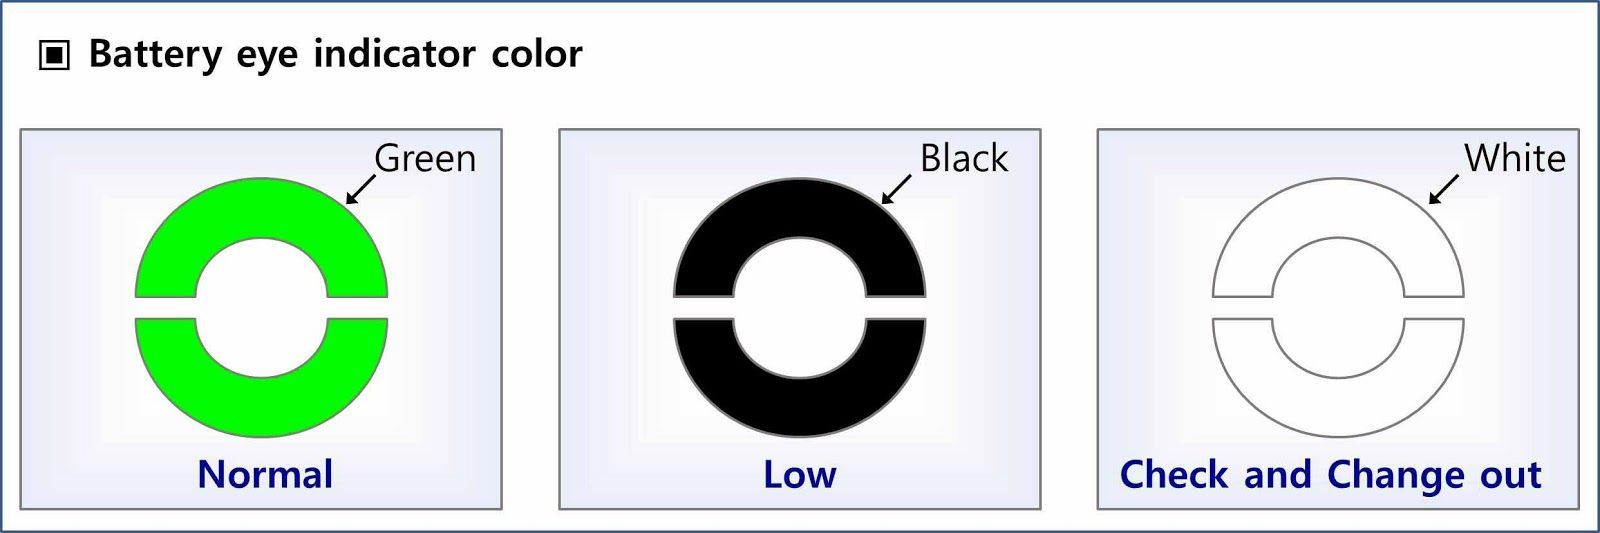 Black and Green Eye Logo - GMDSS(Global Maritime Distress and Safety System): □ Battery eye ...